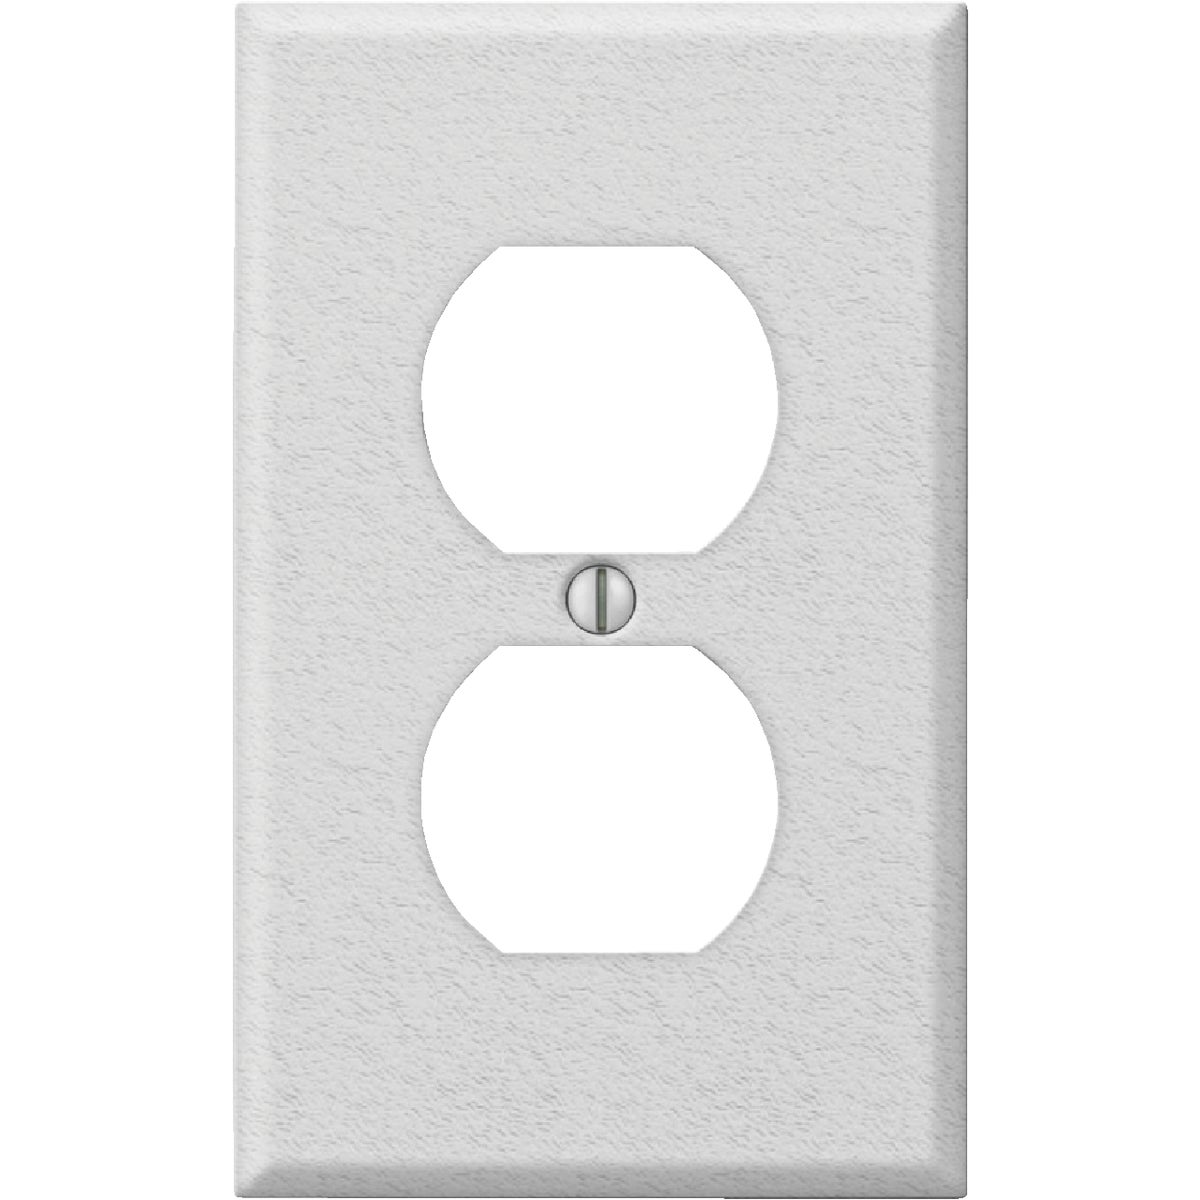 WHT OUTLET WALL PLATE - 8WK108 by Jackson Deerfield Mf